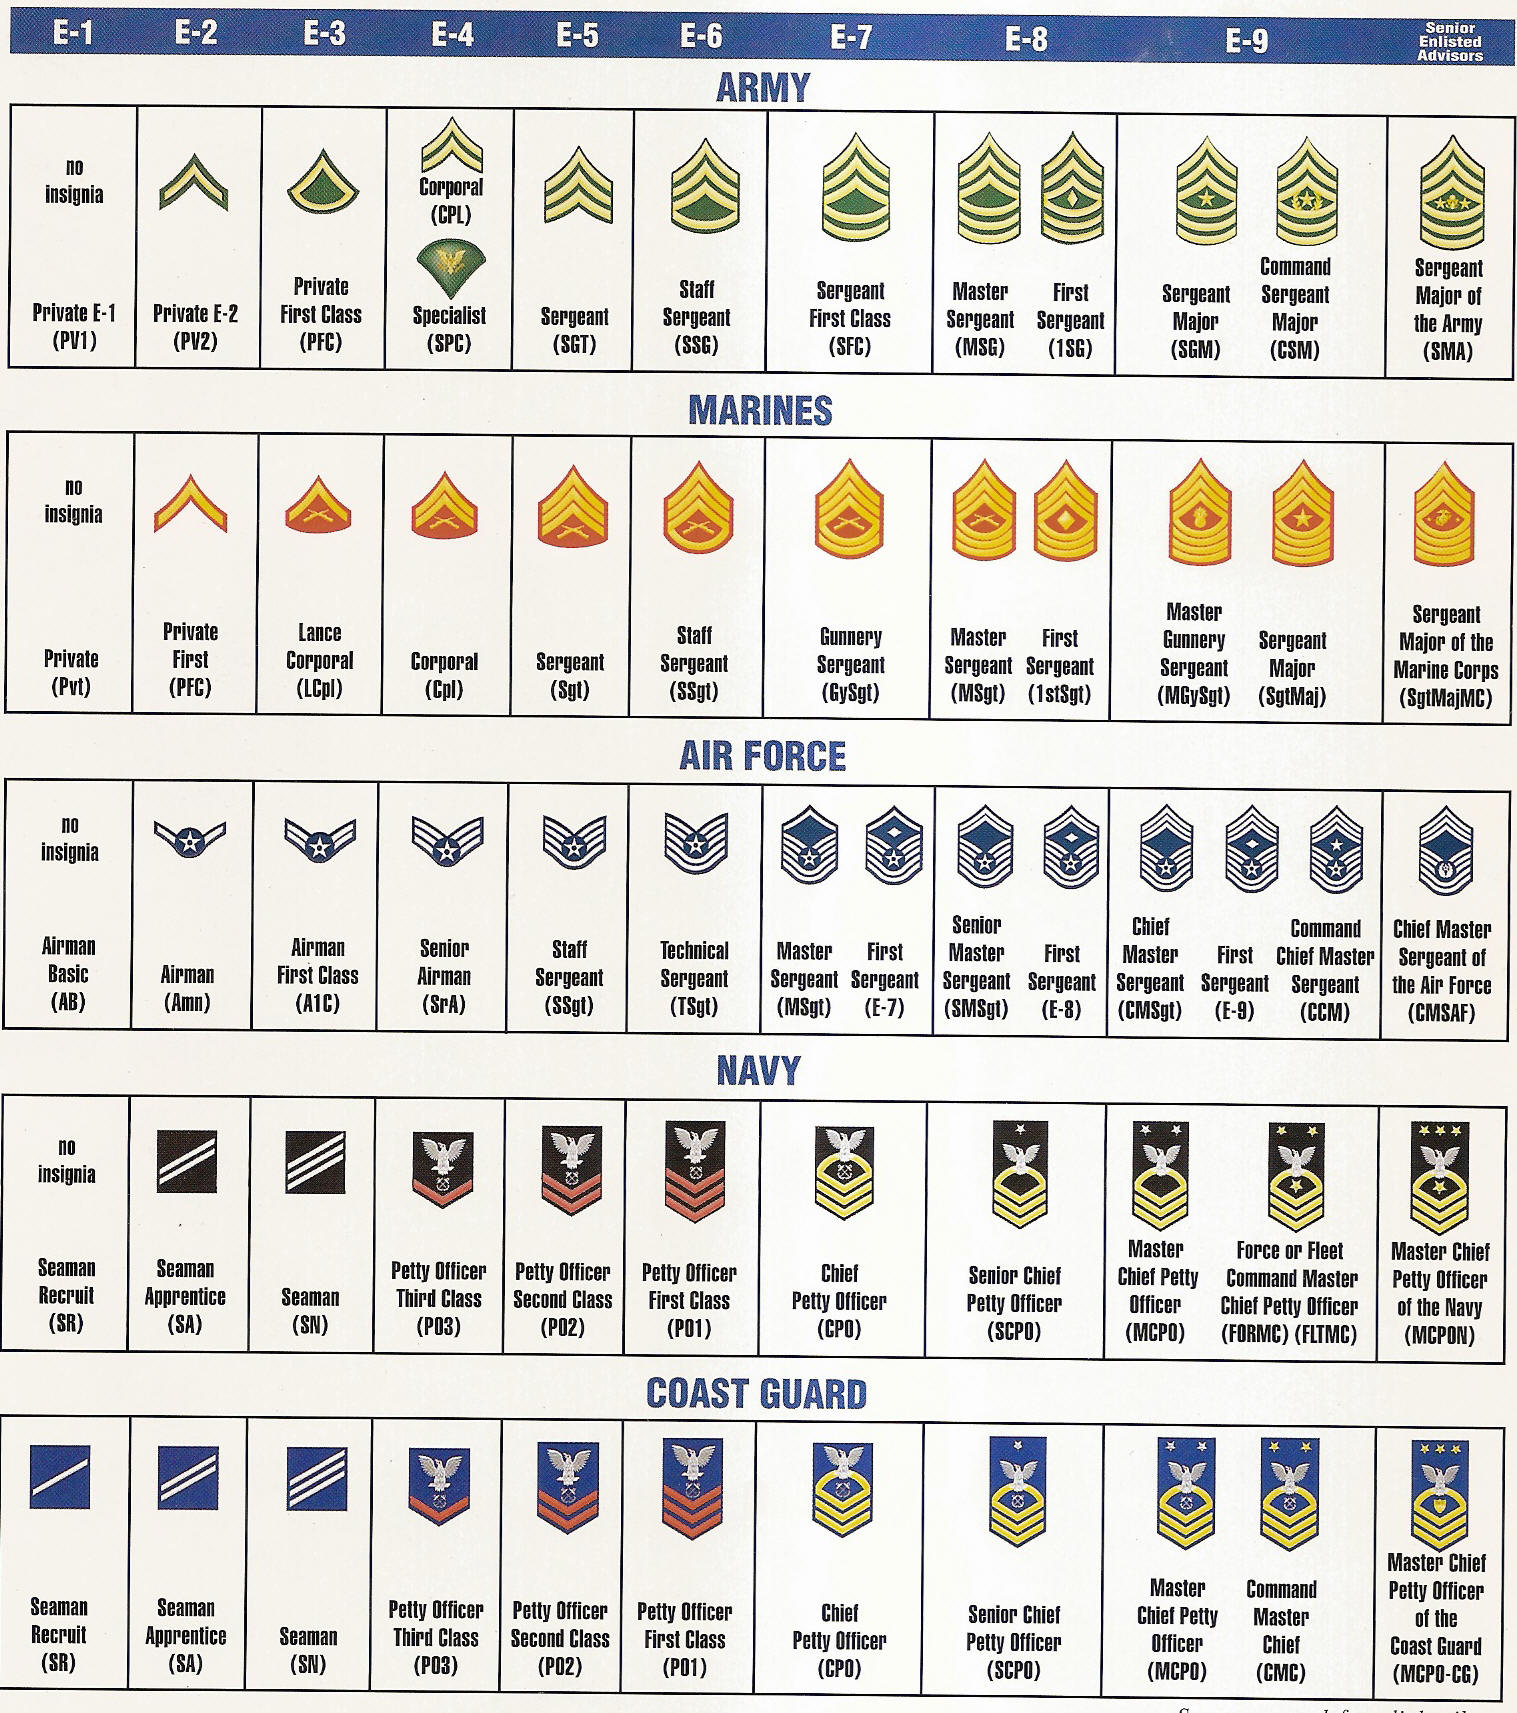 army enlisted rank structure Ranks in the canadian armed forces (caf) mark a person's position in its hierarchical structure and authority, they earn promotions in rank the formal rank structure within the caf is essential for: force ranks and badges here are the navy, army and air force ranks with classifications and acronyms.